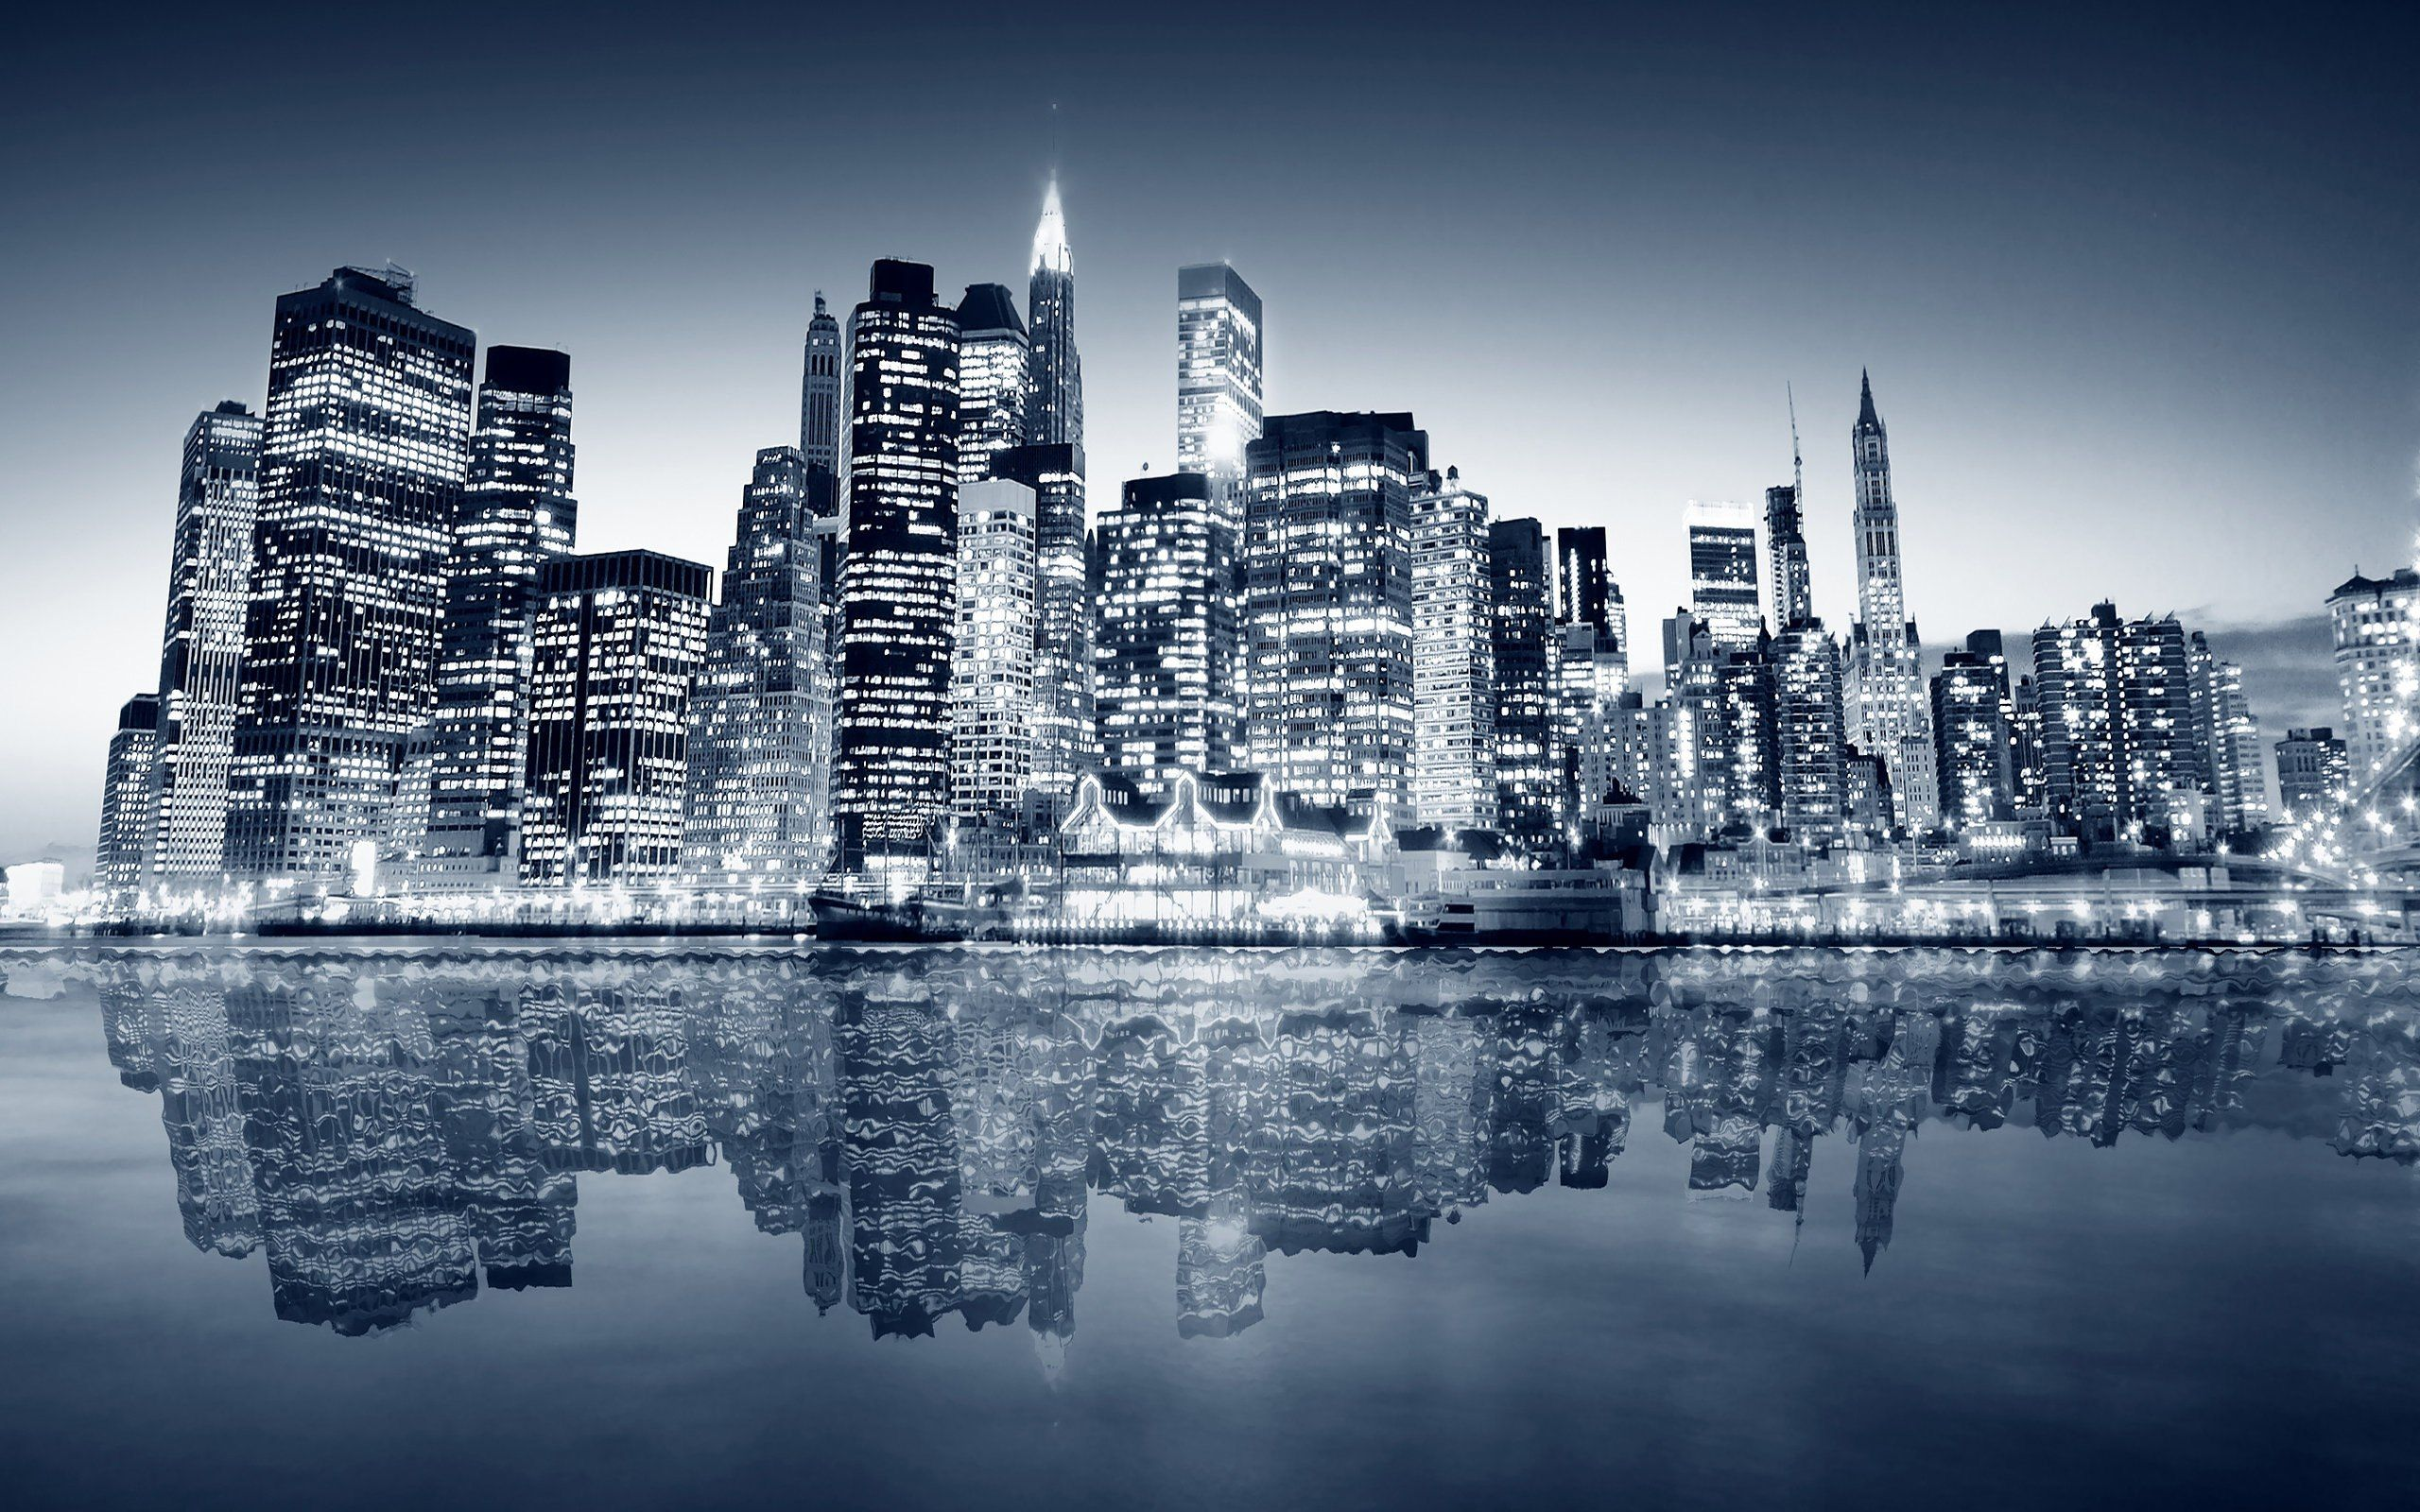 Black And White New York Skyline 9 Wallpaper Hd Hd Backgrounds Hd Screensavers Hd Wallpapers 1080p Full Size Images Hd Widescreen Wallpapers Desktop Wallpapers